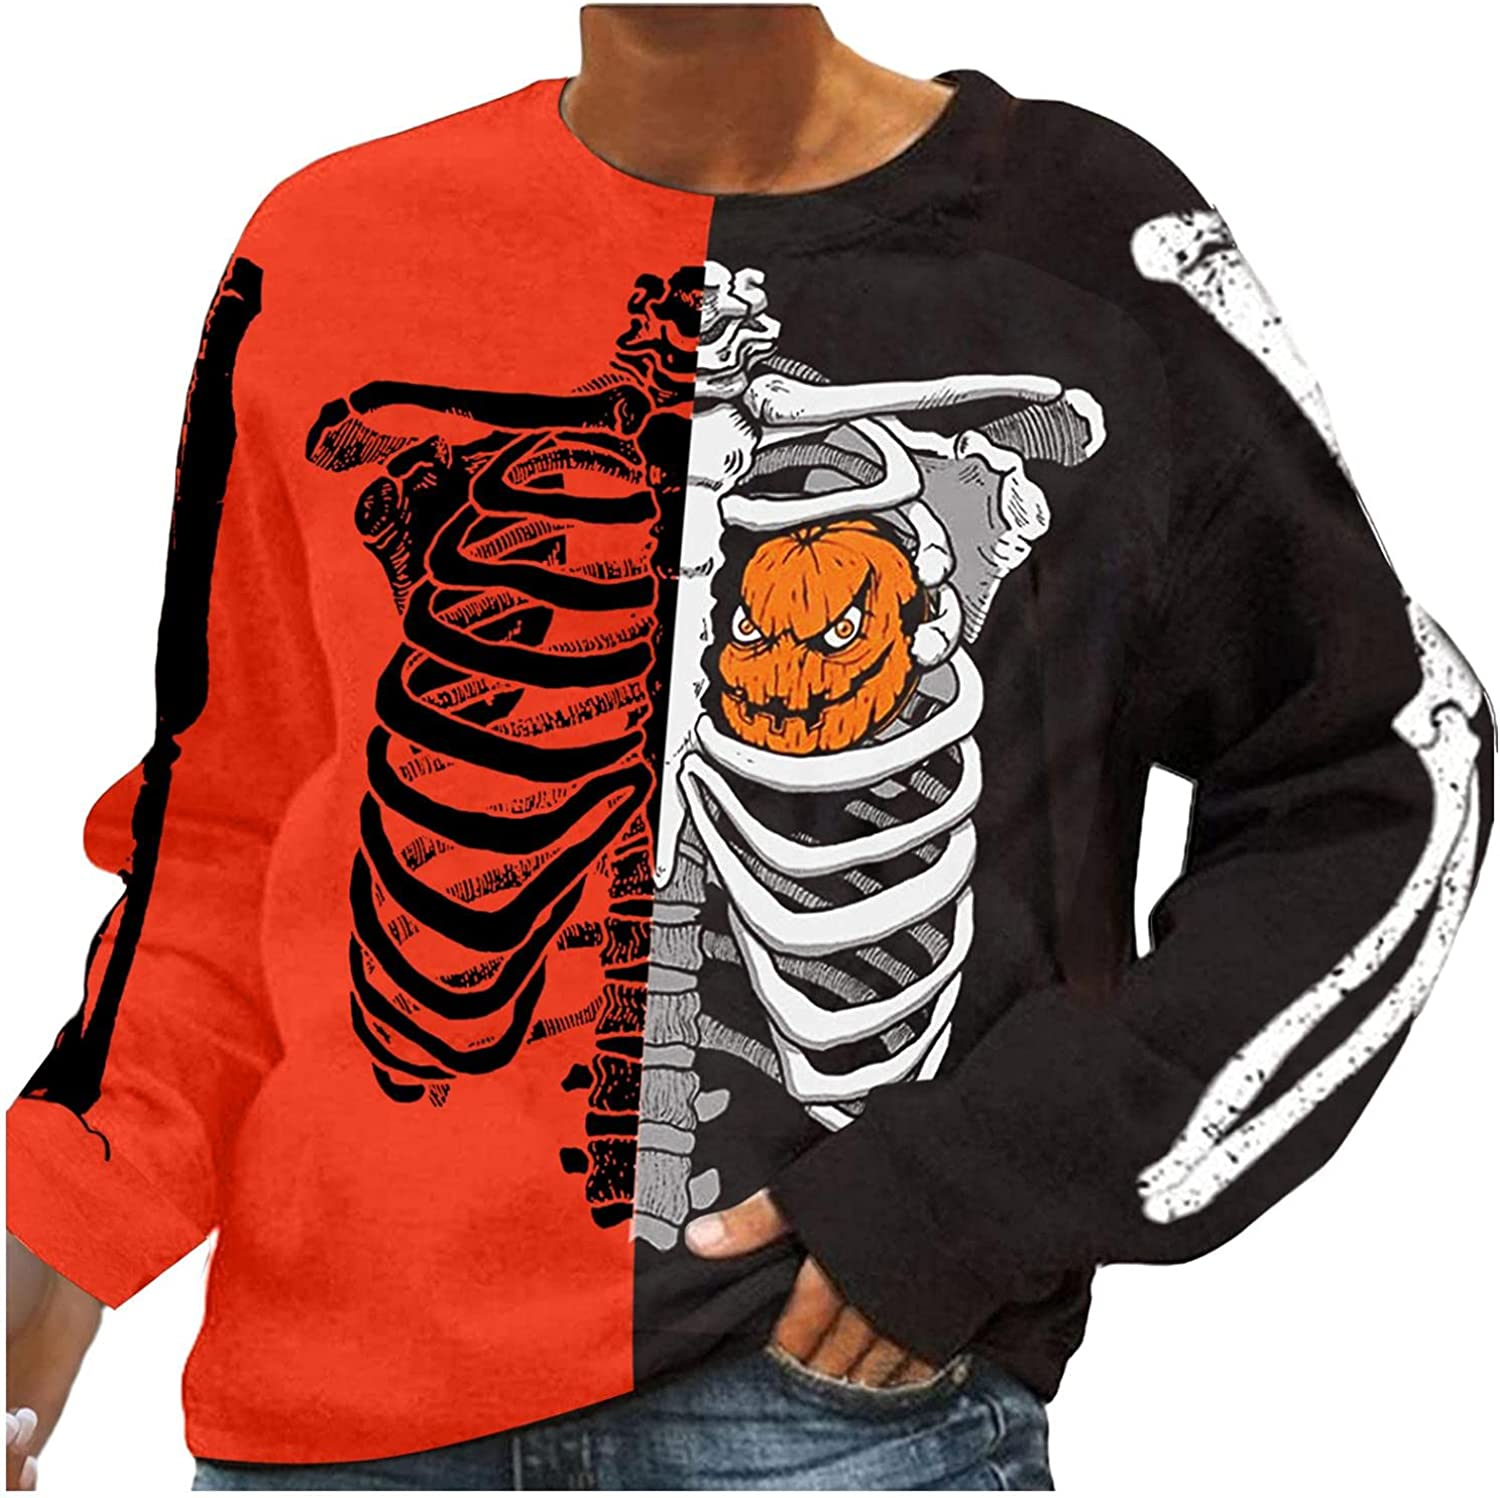 Jaqqra Halloween Sweatshirts for Women Casual Pullover Skeleton Print Graphic Crewneck Long Sleeve Sweaters Tops Shirts